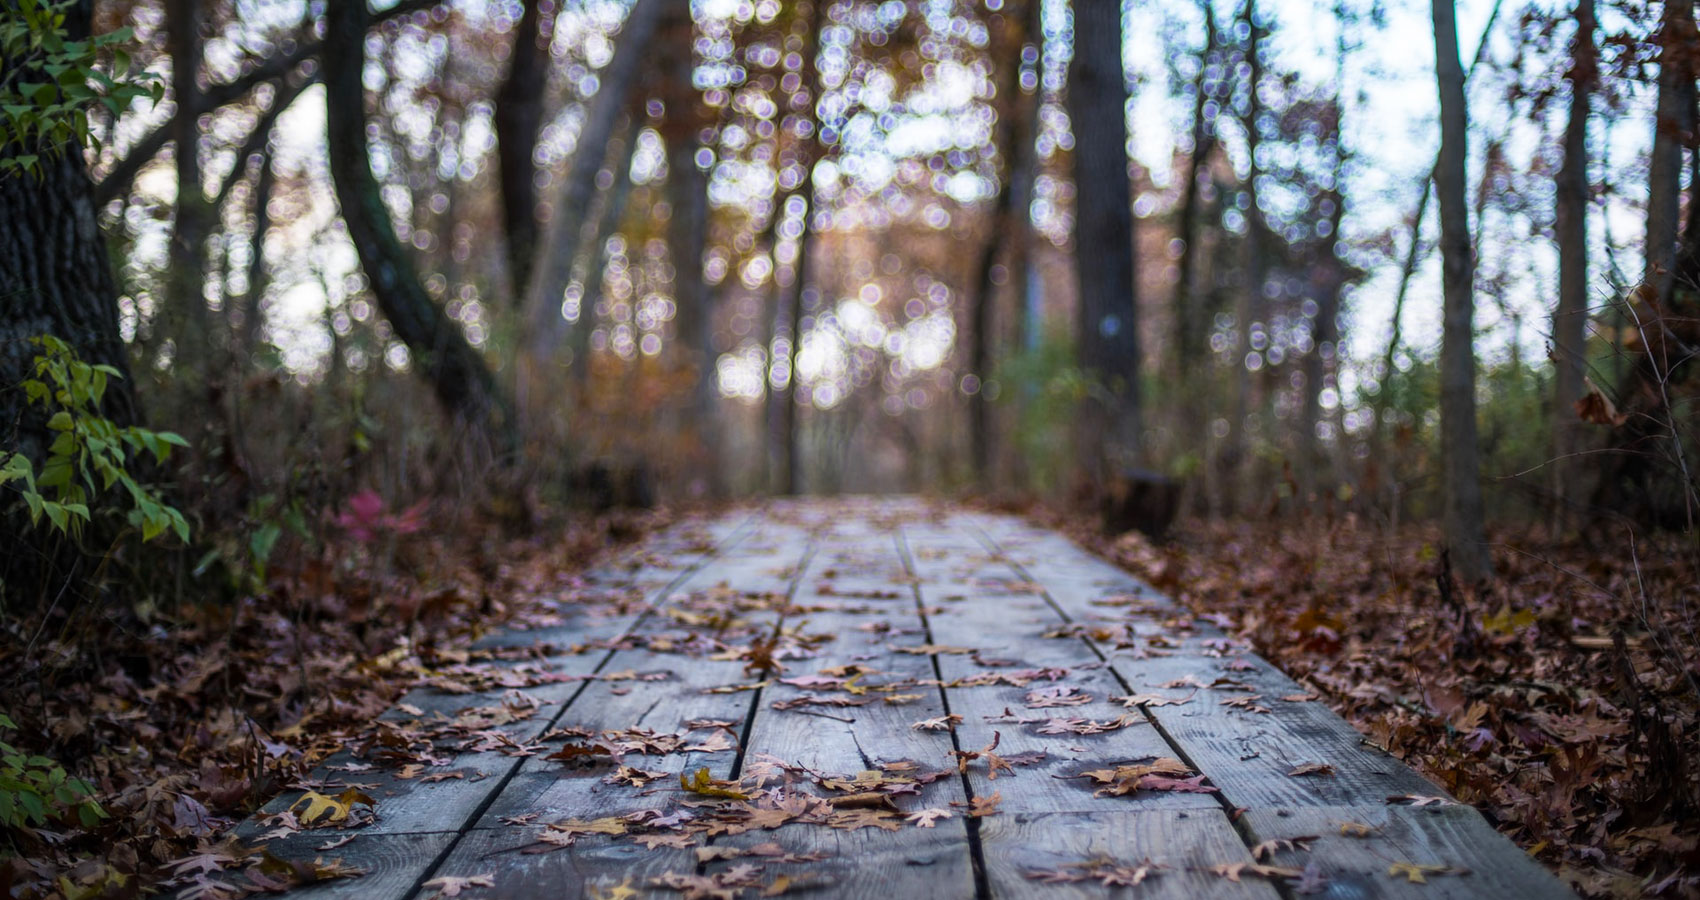 The Worn Path of Souls, poetry written by Glen Mckenzie at Spilwords.com